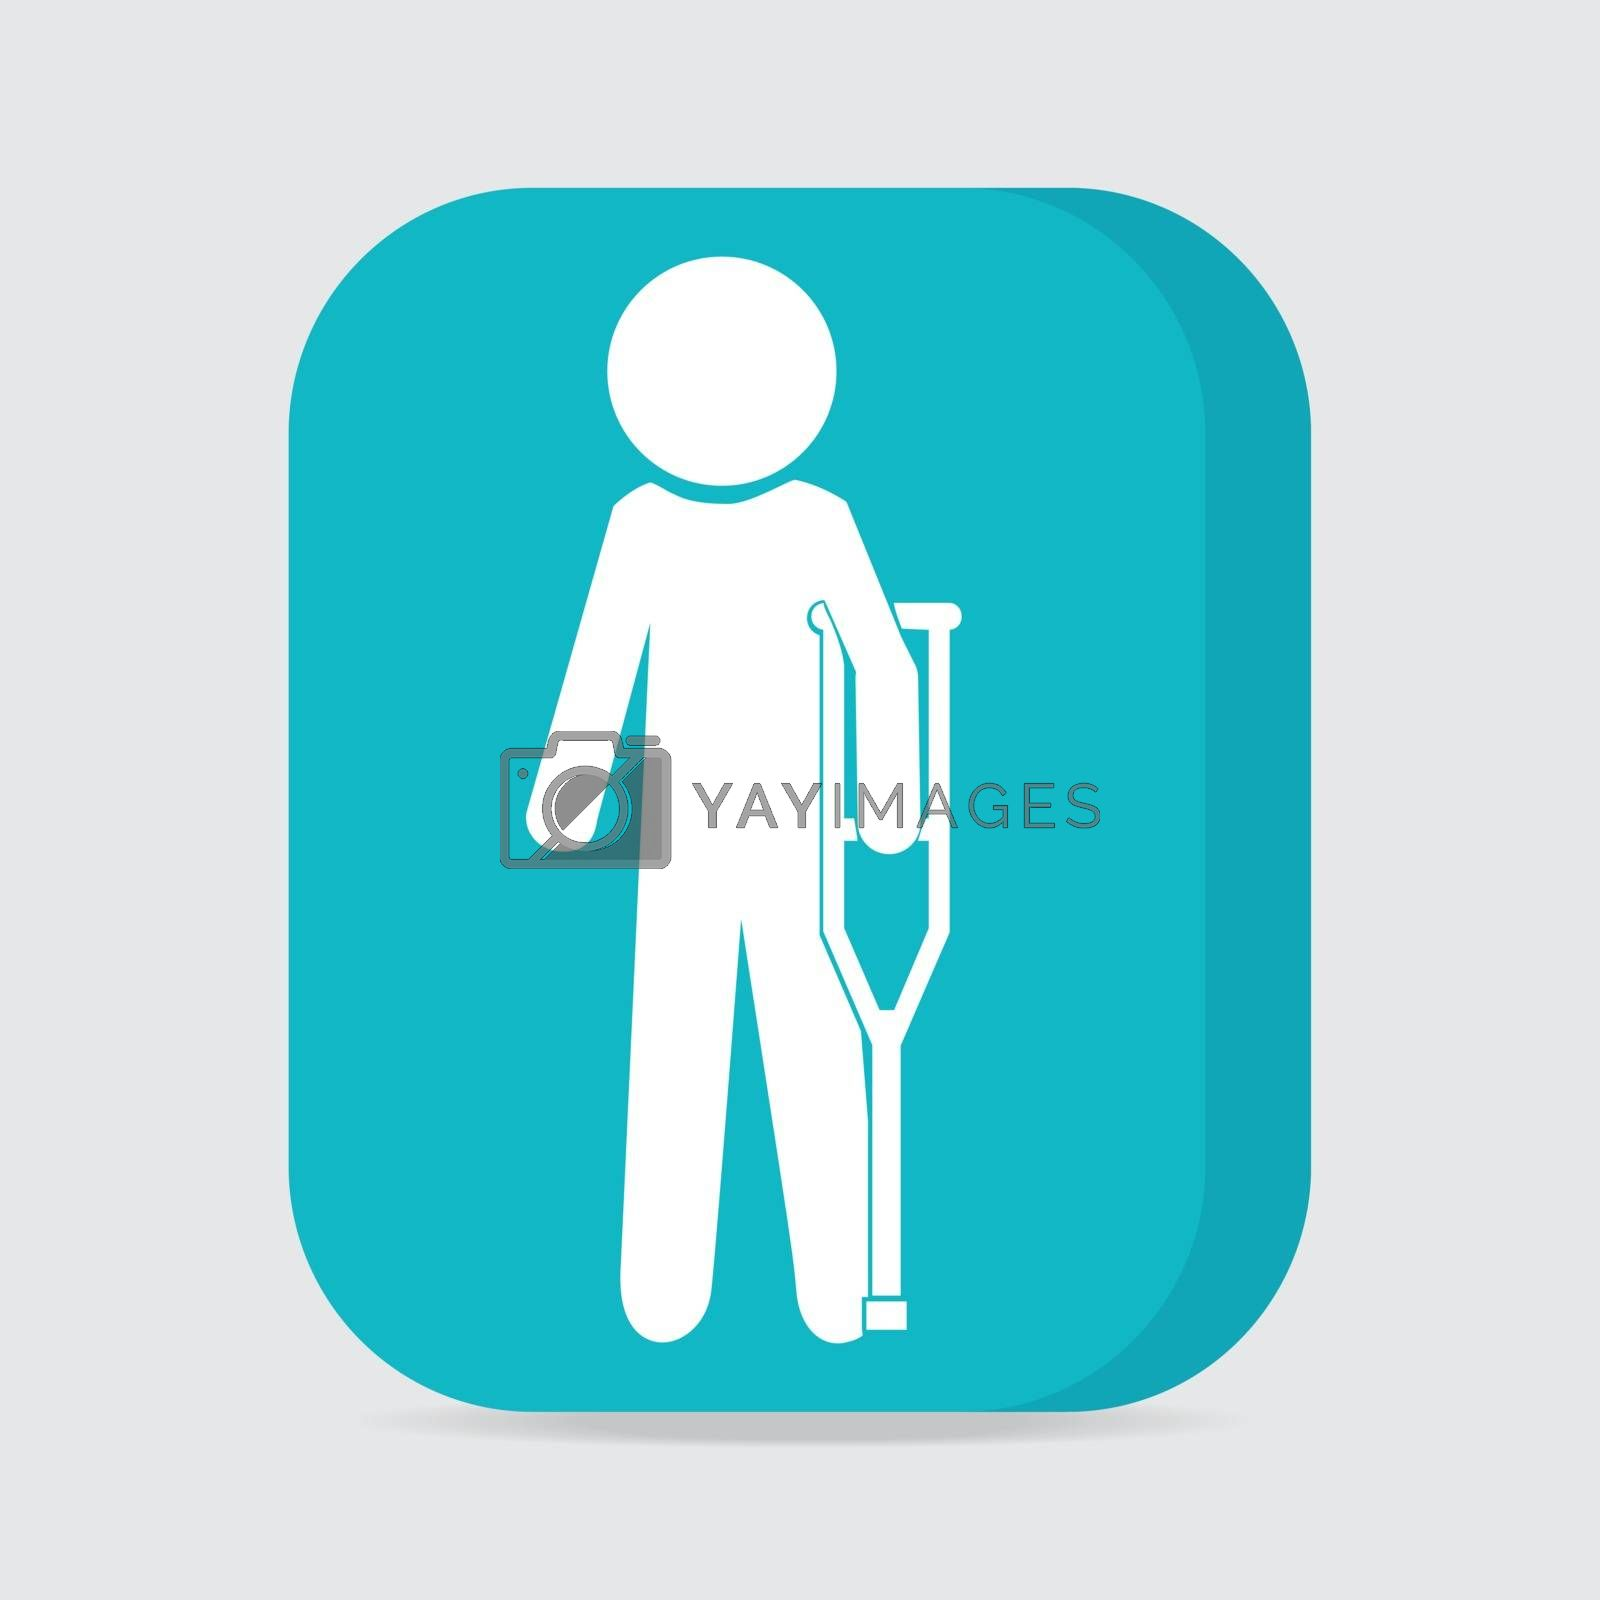 Injured man with crutches sign icon illustration